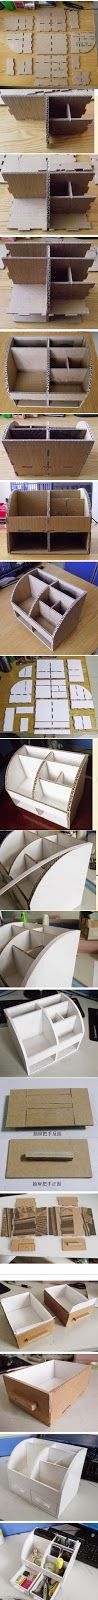 DIY SUPER IDEAS: How To Make Carton Office Stationery Box